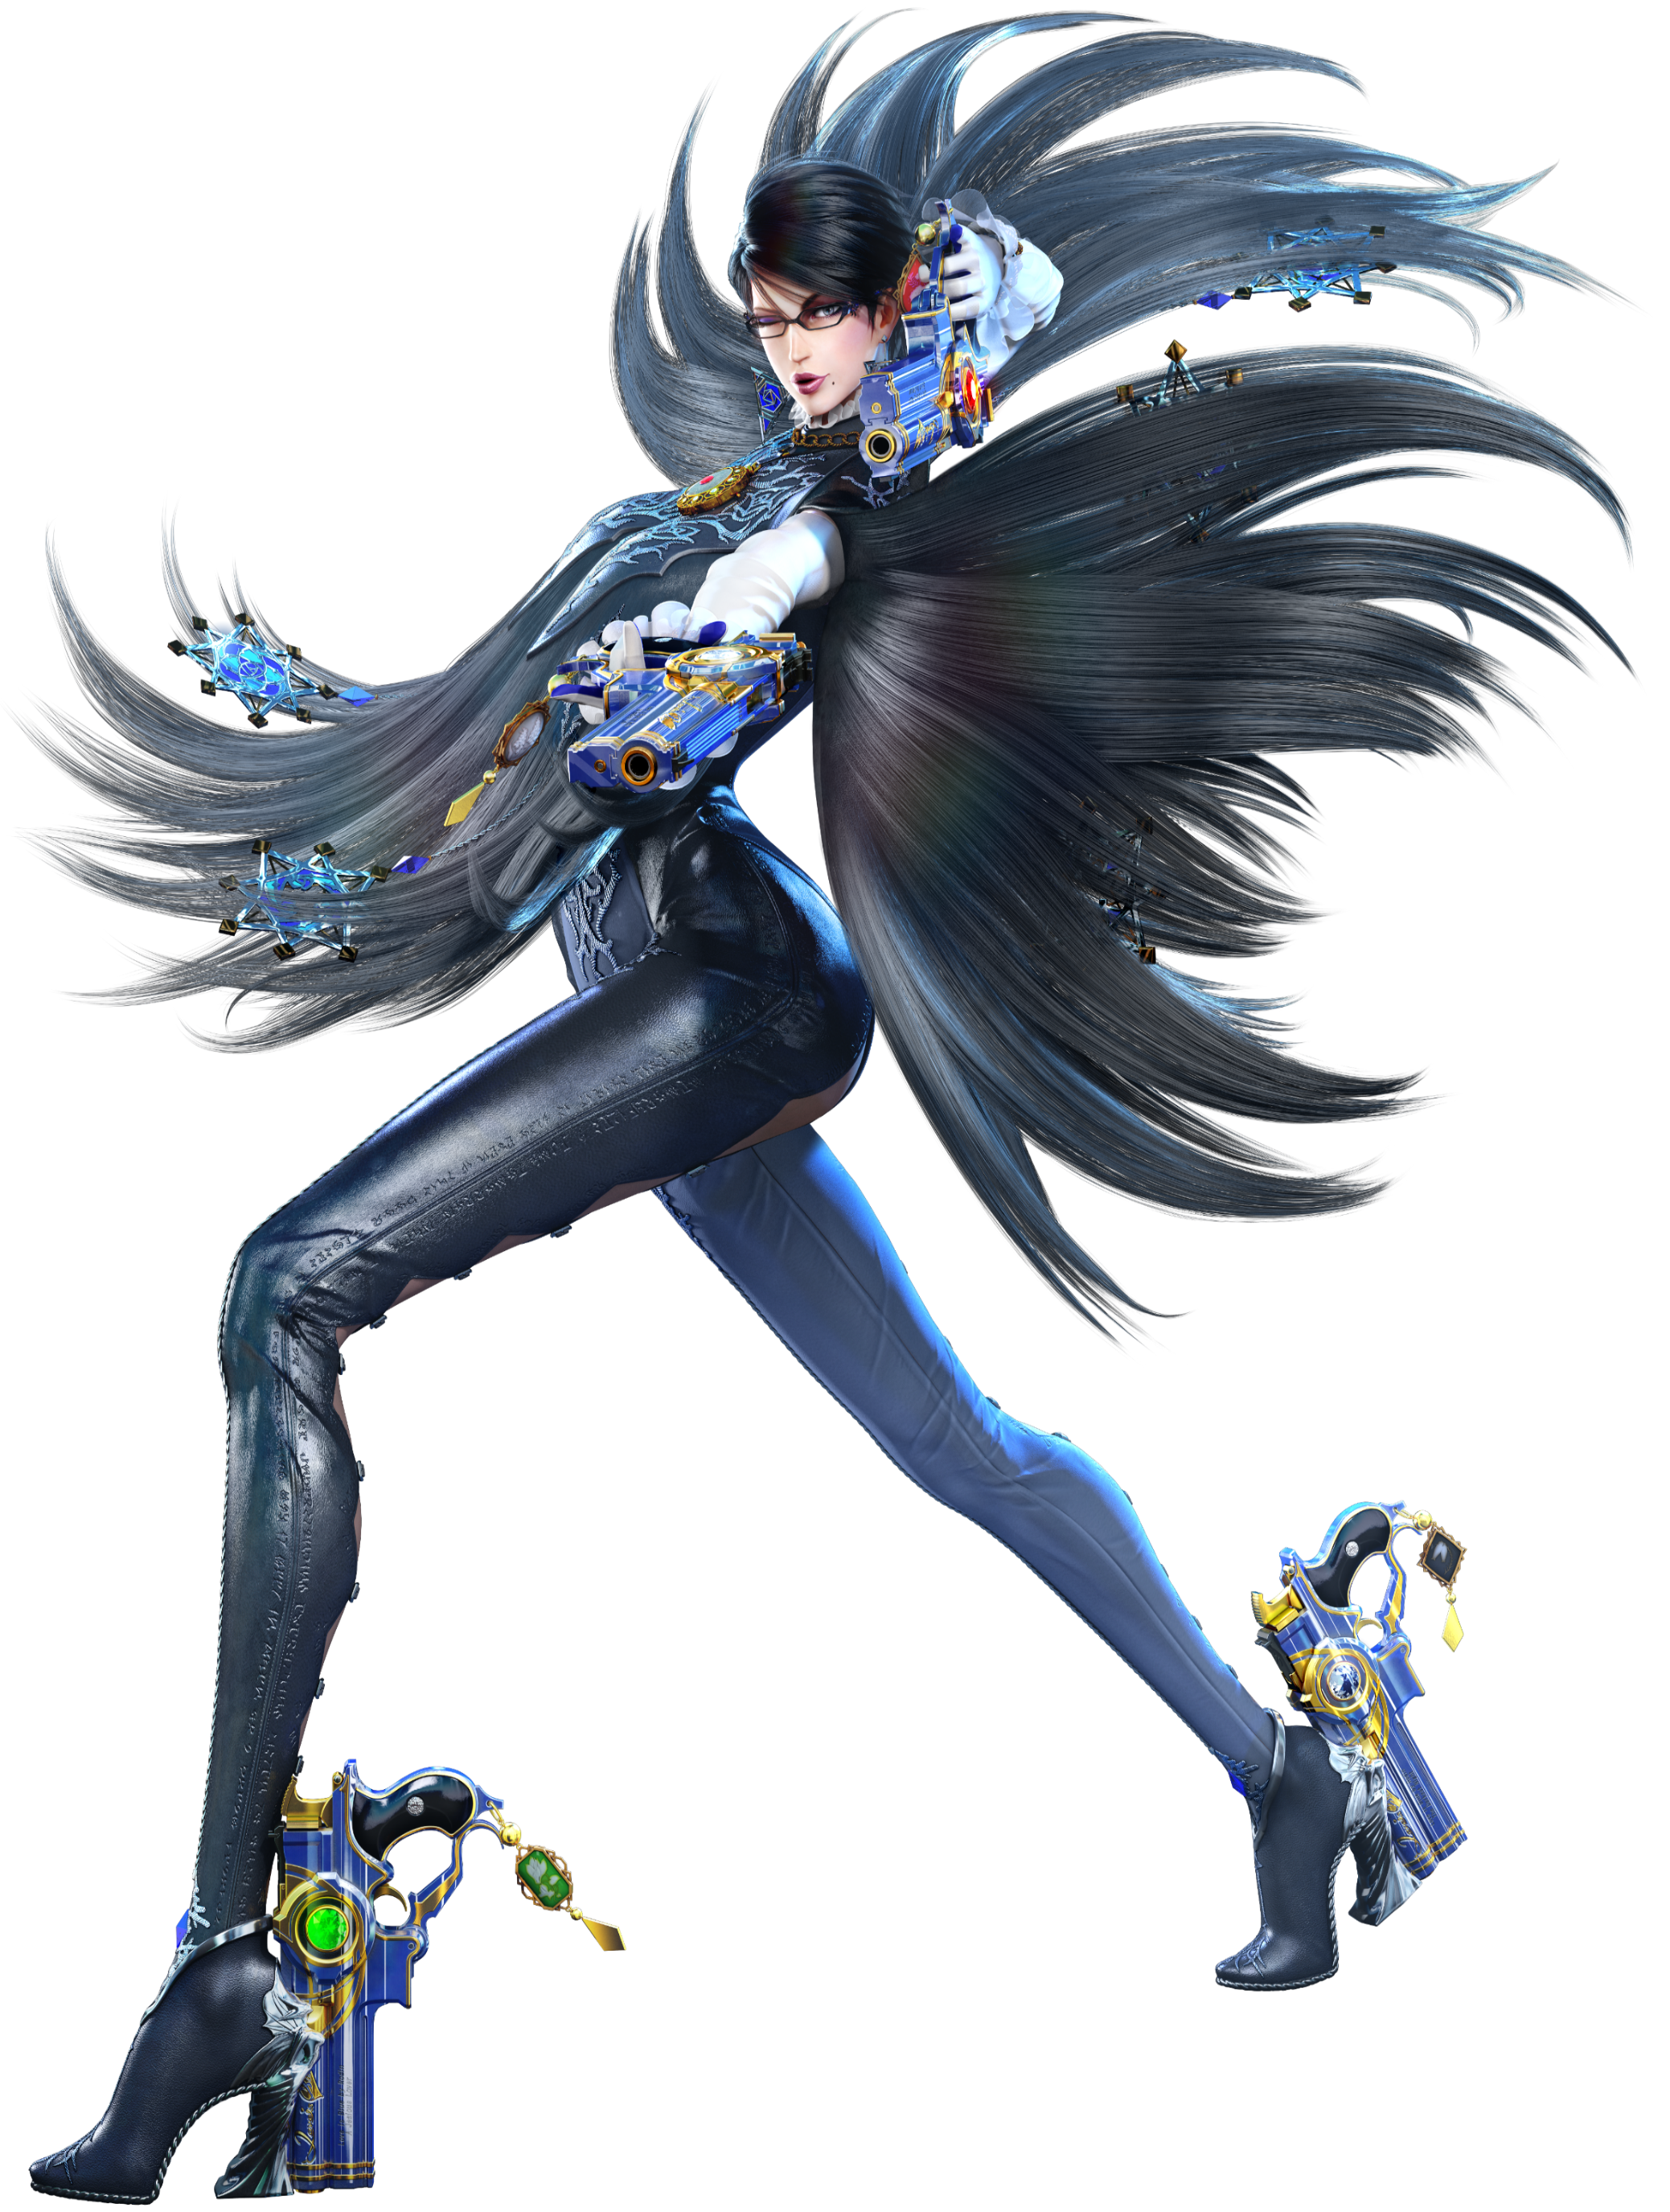 [Image - 776051] | Bayonetta | Know Your Meme